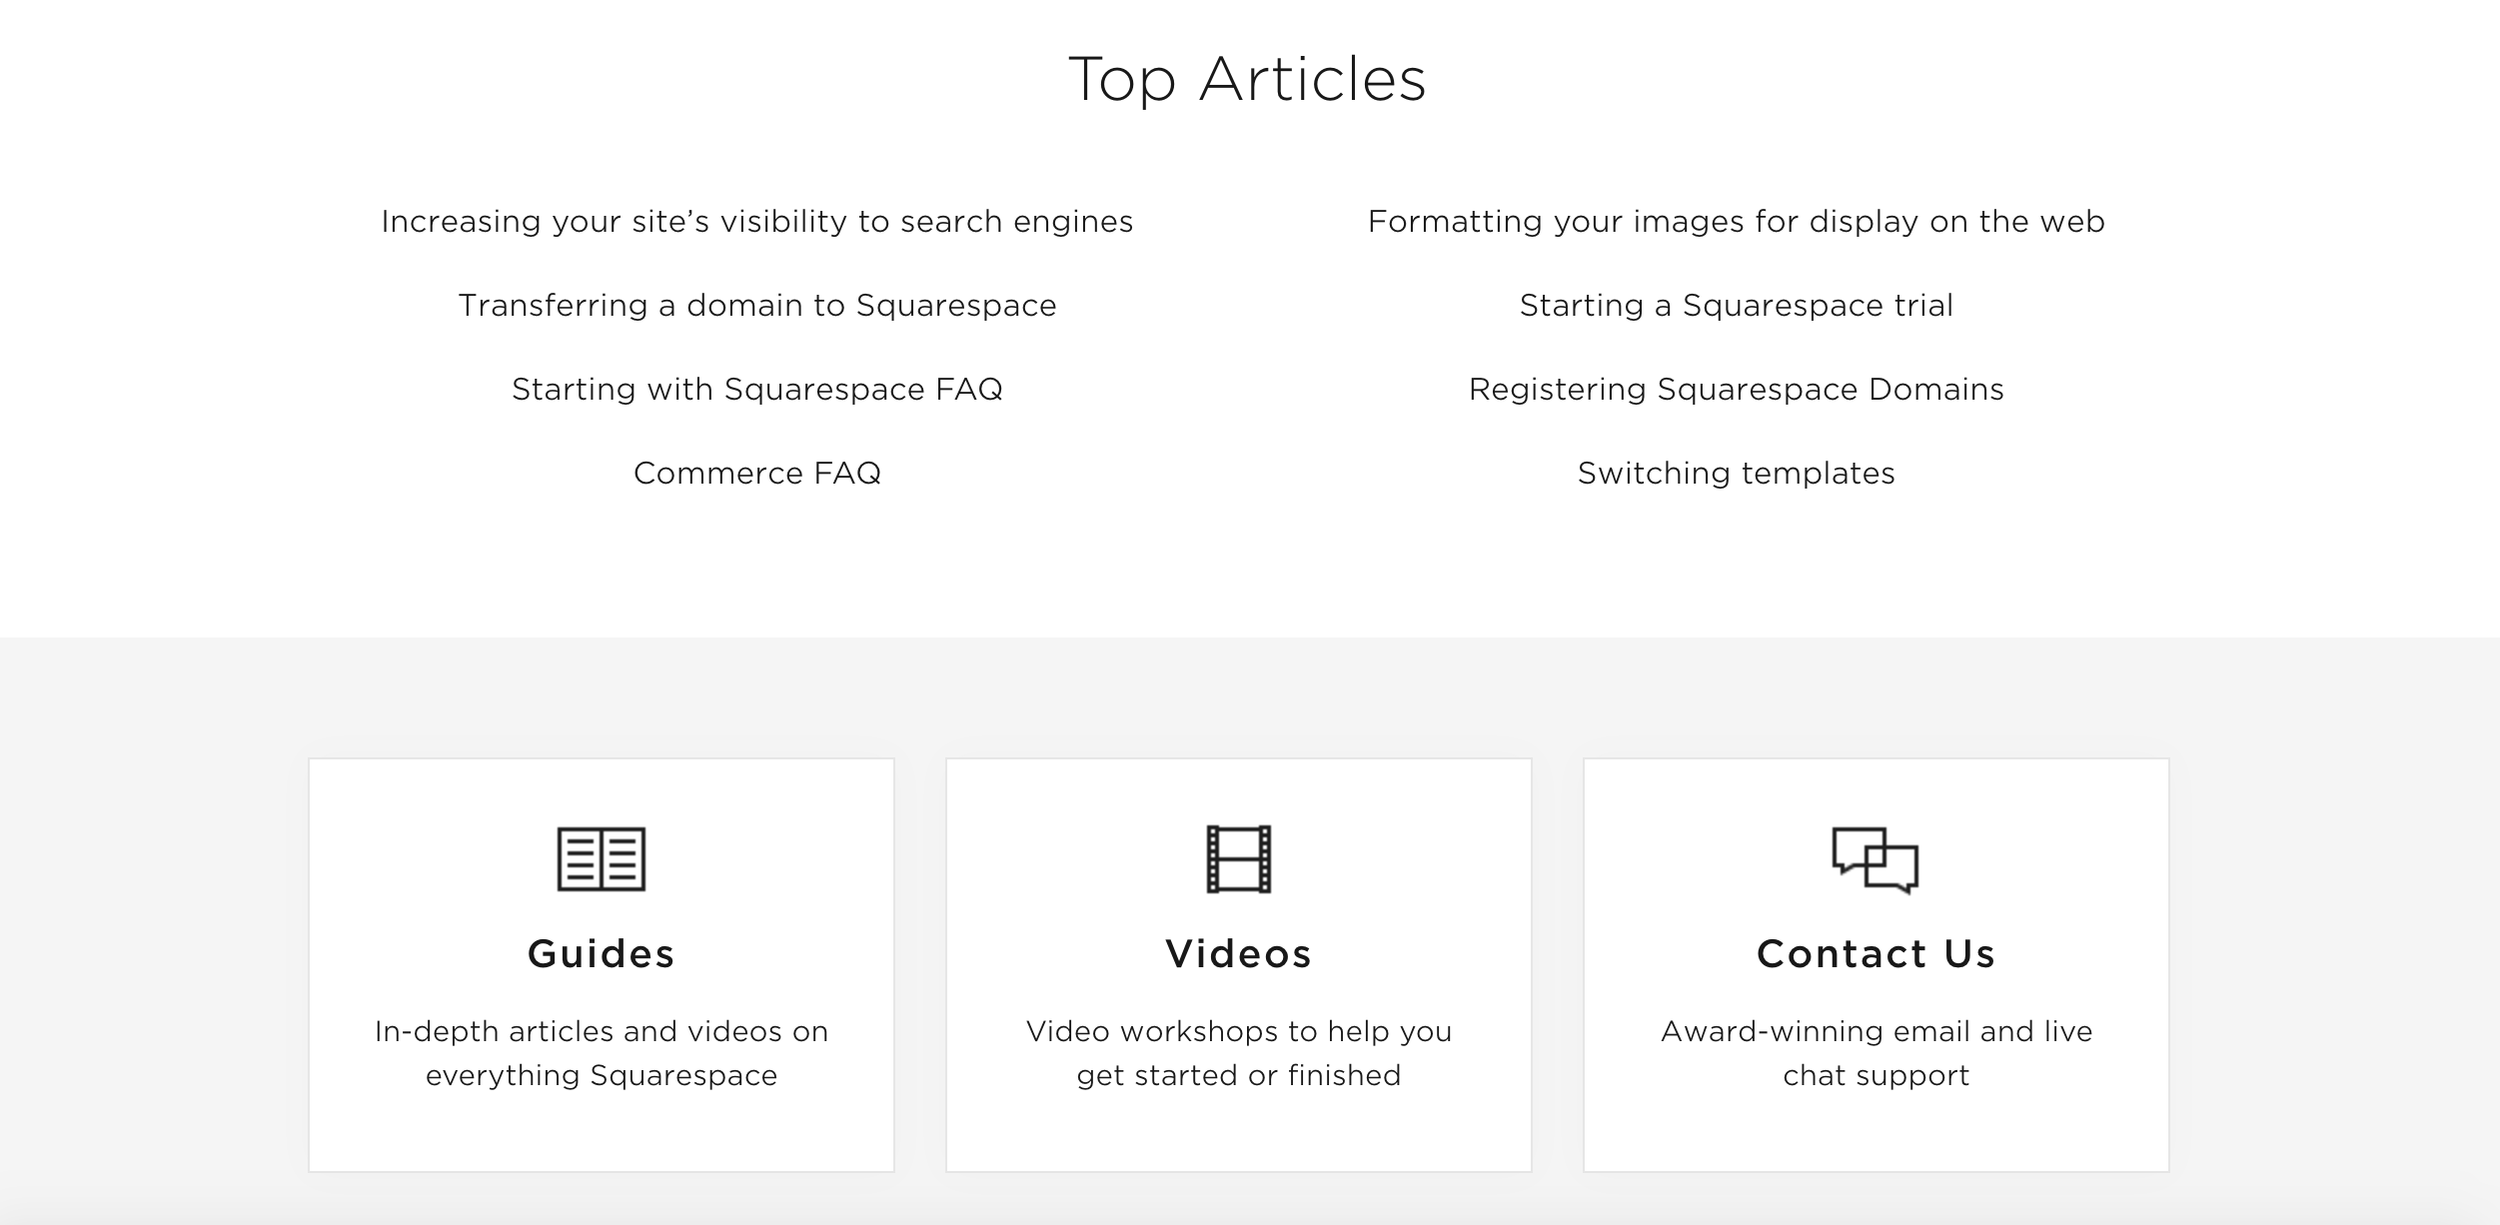 Squarespace has a full library of help articles and videos.